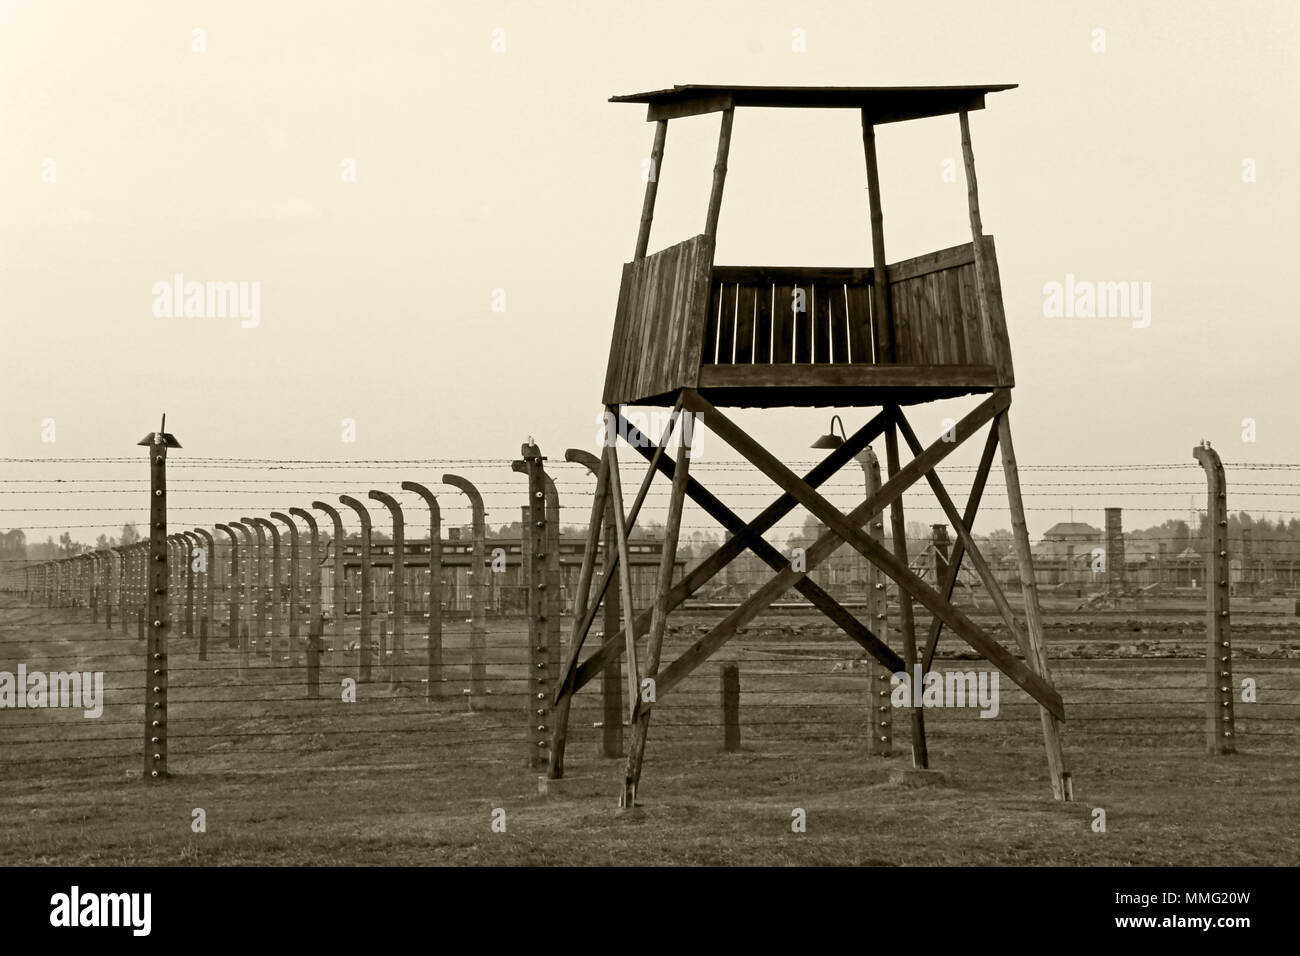 AUSCHWITZ, POLAND, OCTOBER 12, 2013: Watchtower and fence at concentration camp at Auschwitz Birkenau KZ, black white and beige duplex processing photography, Poland - Stock Image